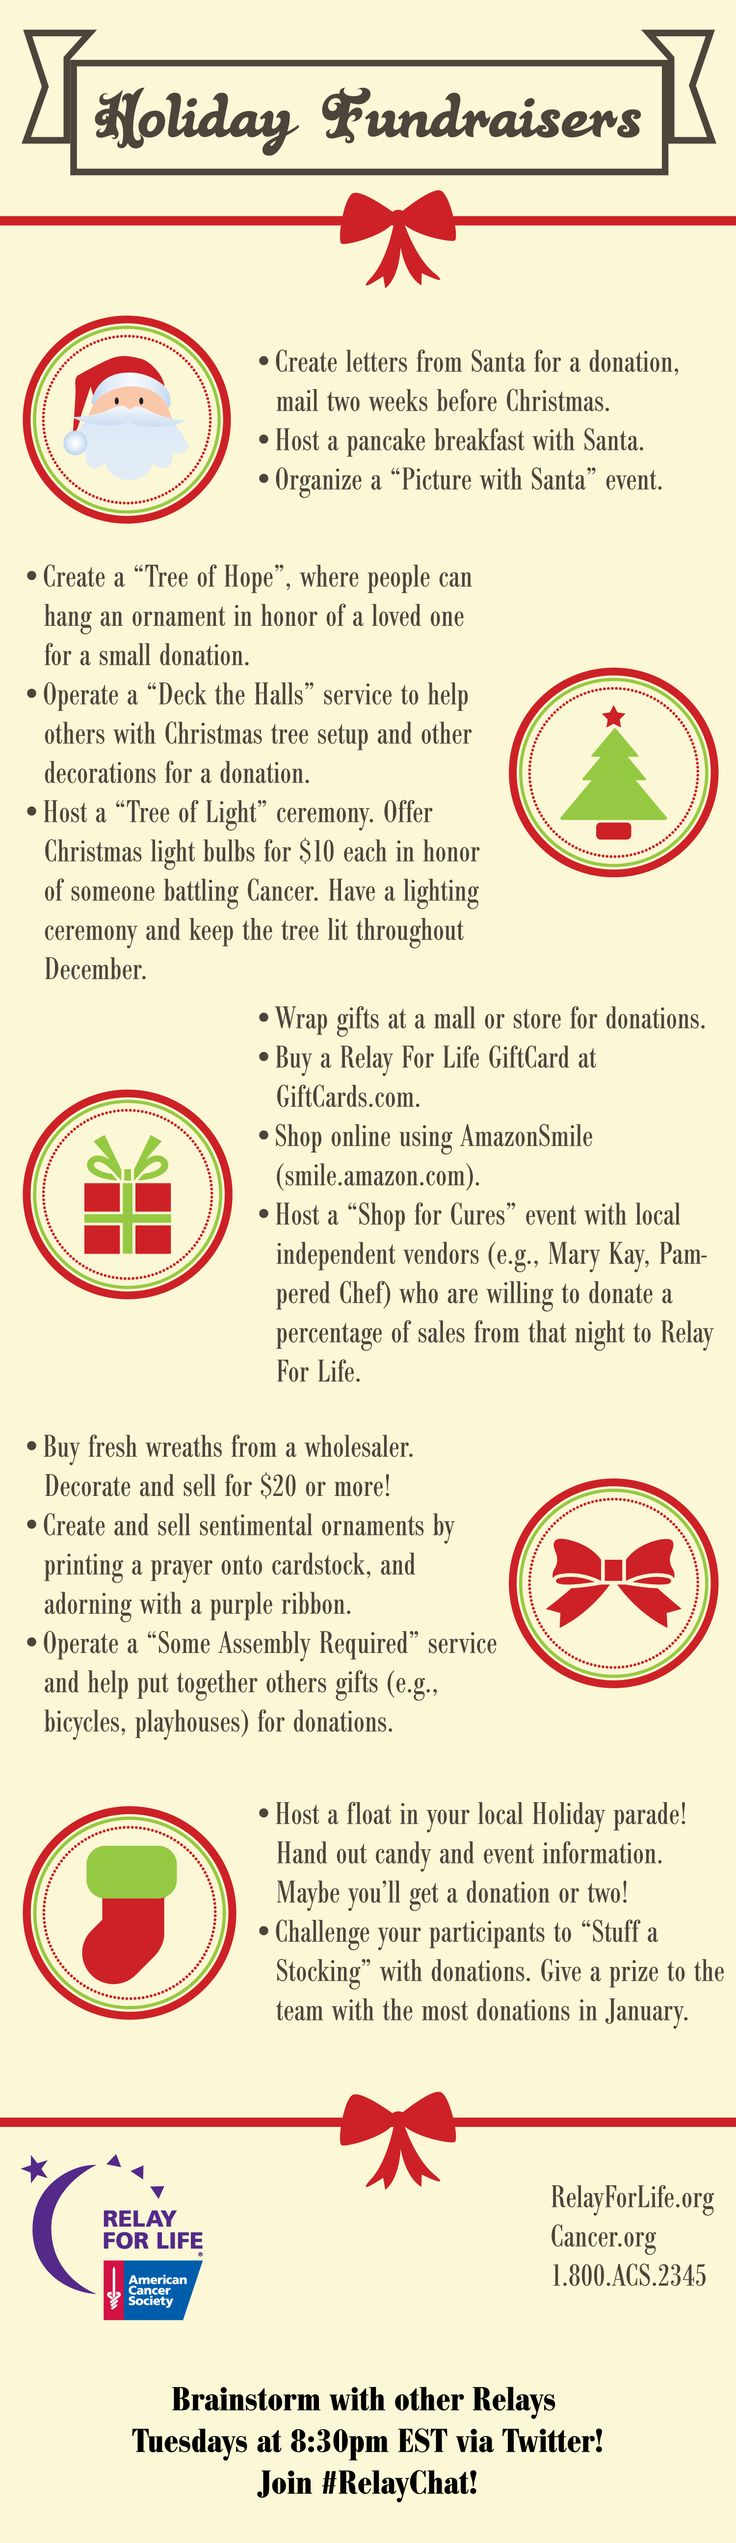 Ideas for Holiday Fundraisers generated by #RelayChat! Join us Tuesdays at 8:30pm via Twitter to talk Relay For Life topics.